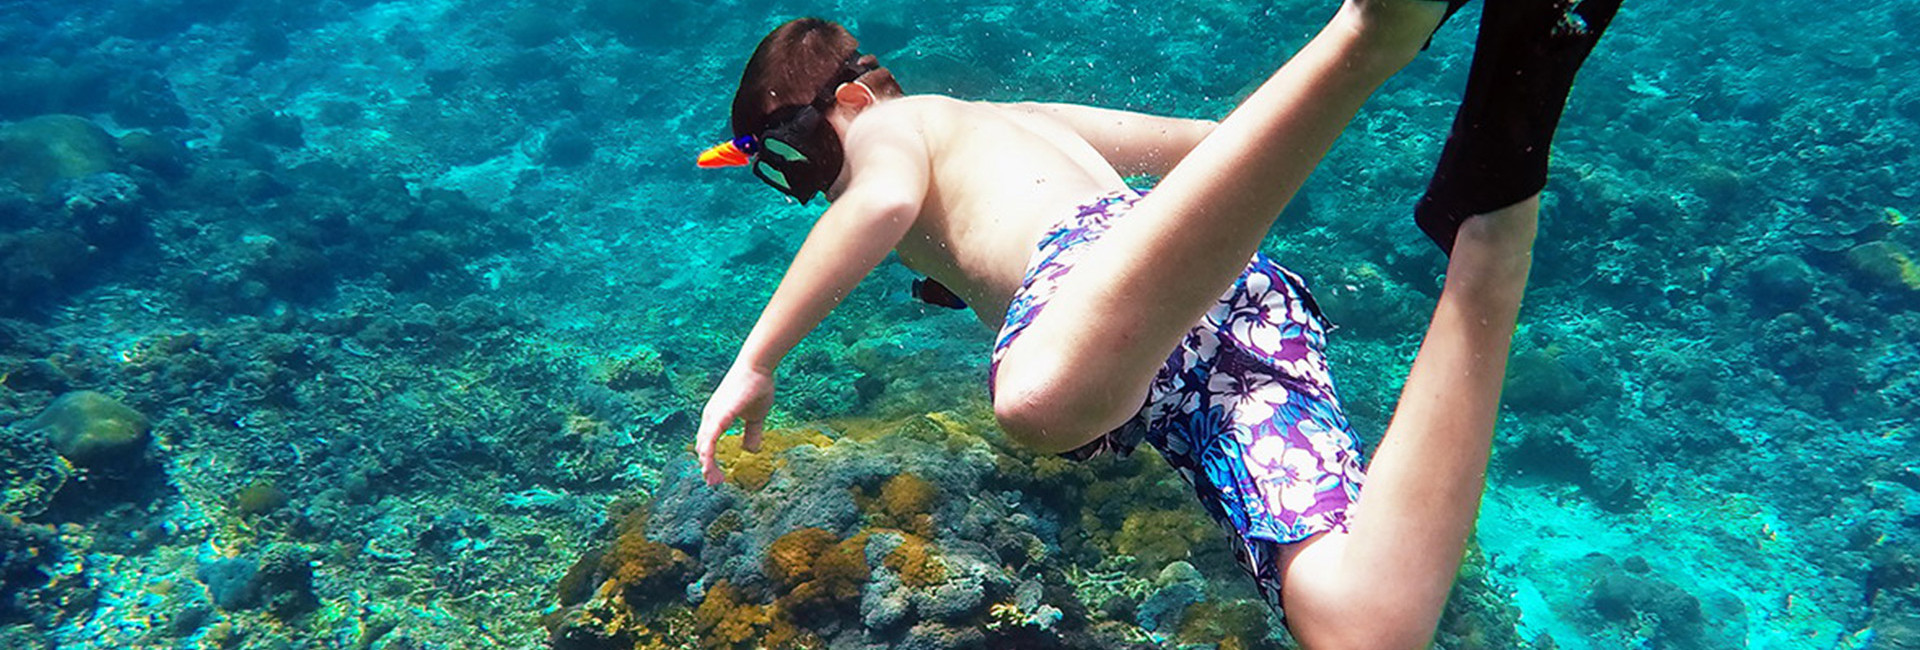 Kid snorkeling in clear water